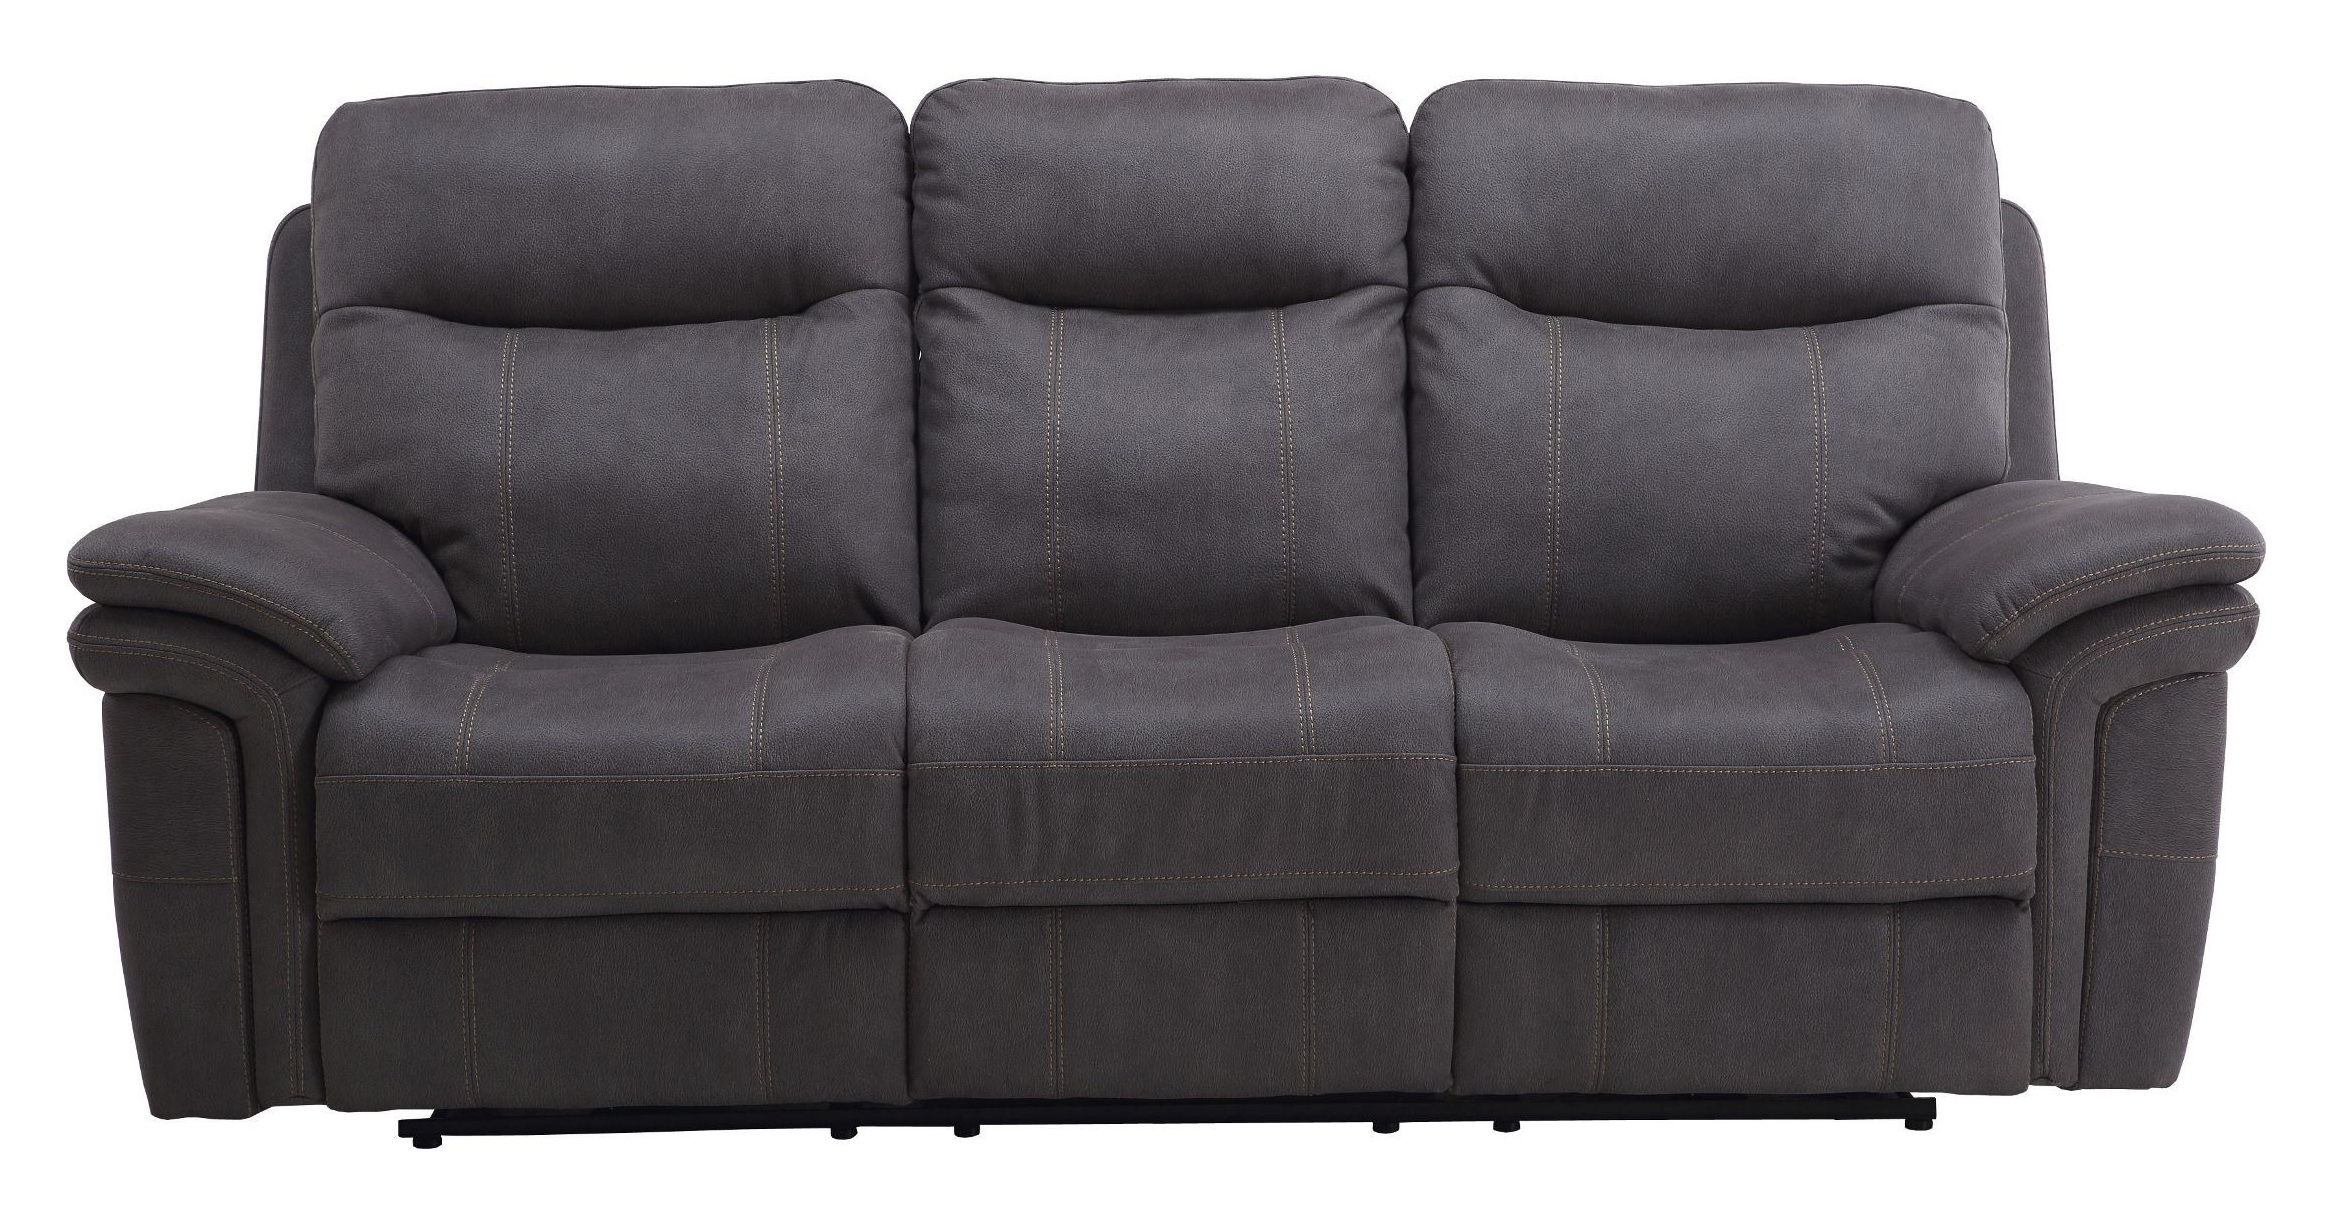 Parker House Mason Power Reclining Sofa Harrington Home Furniture